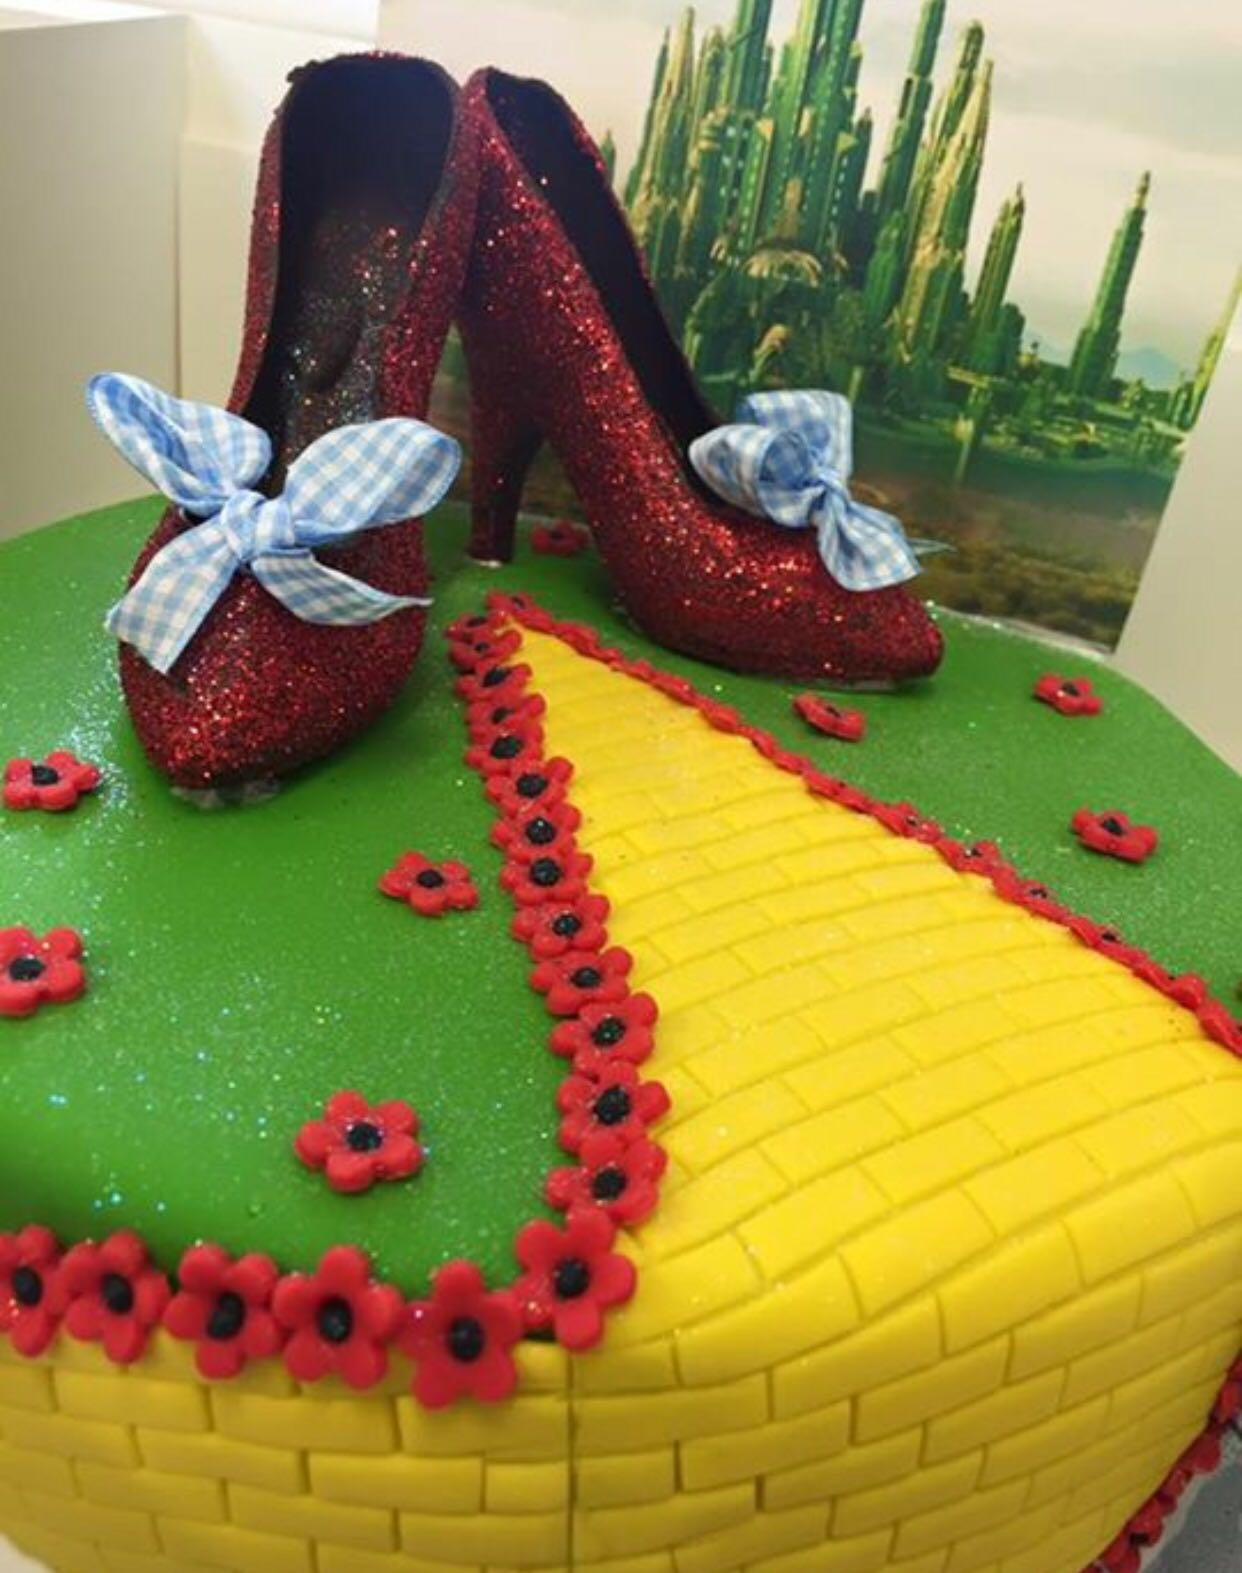 Swell Dorothy The Wizard Of Oz Cake Peter Herd Funny Birthday Cards Online Bapapcheapnameinfo